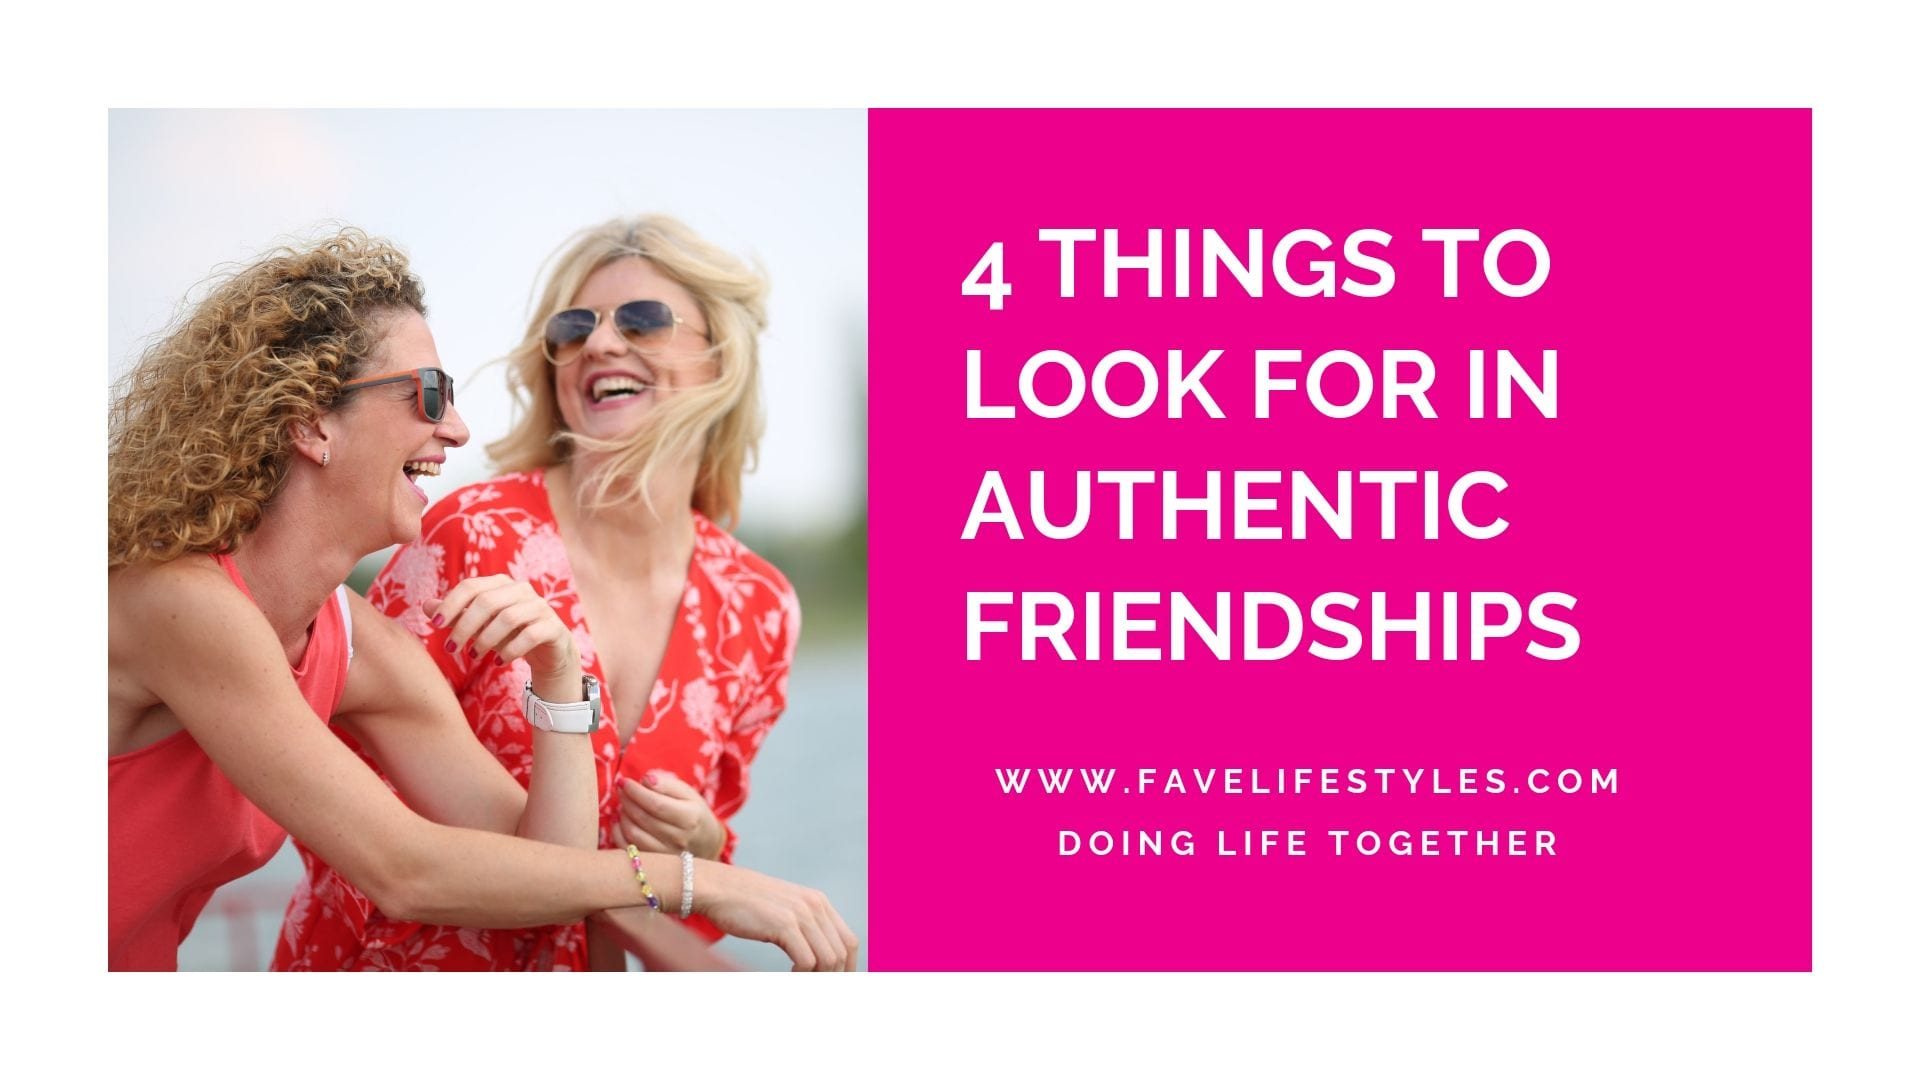 4 Things to Look for in Authentic Friendships